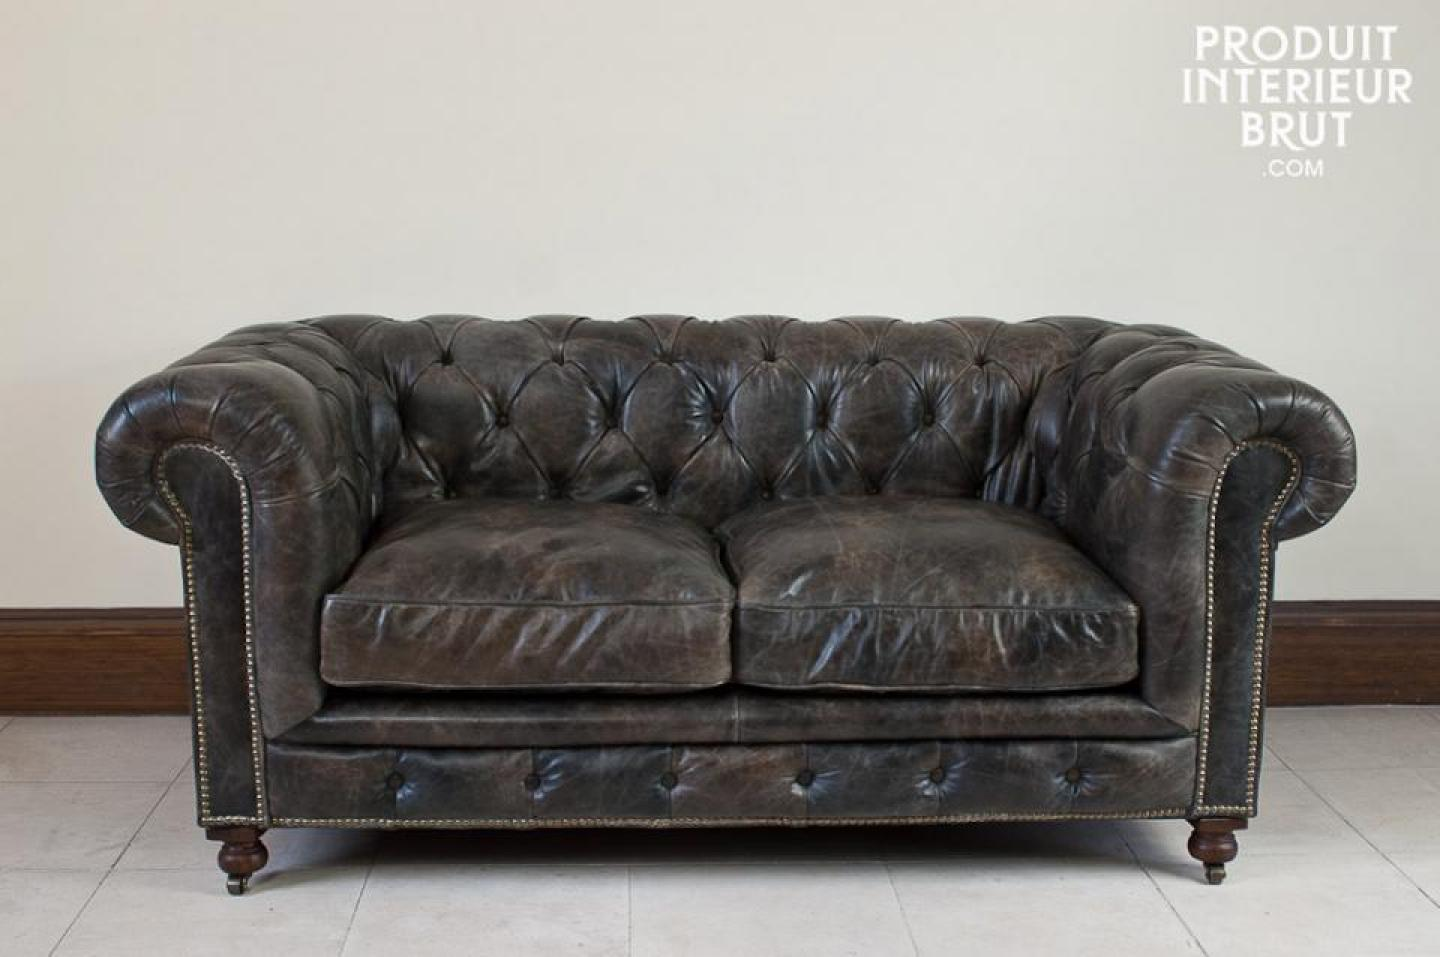 Canapé Marron Vieilli Convertible Photos Canapé Chesterfield